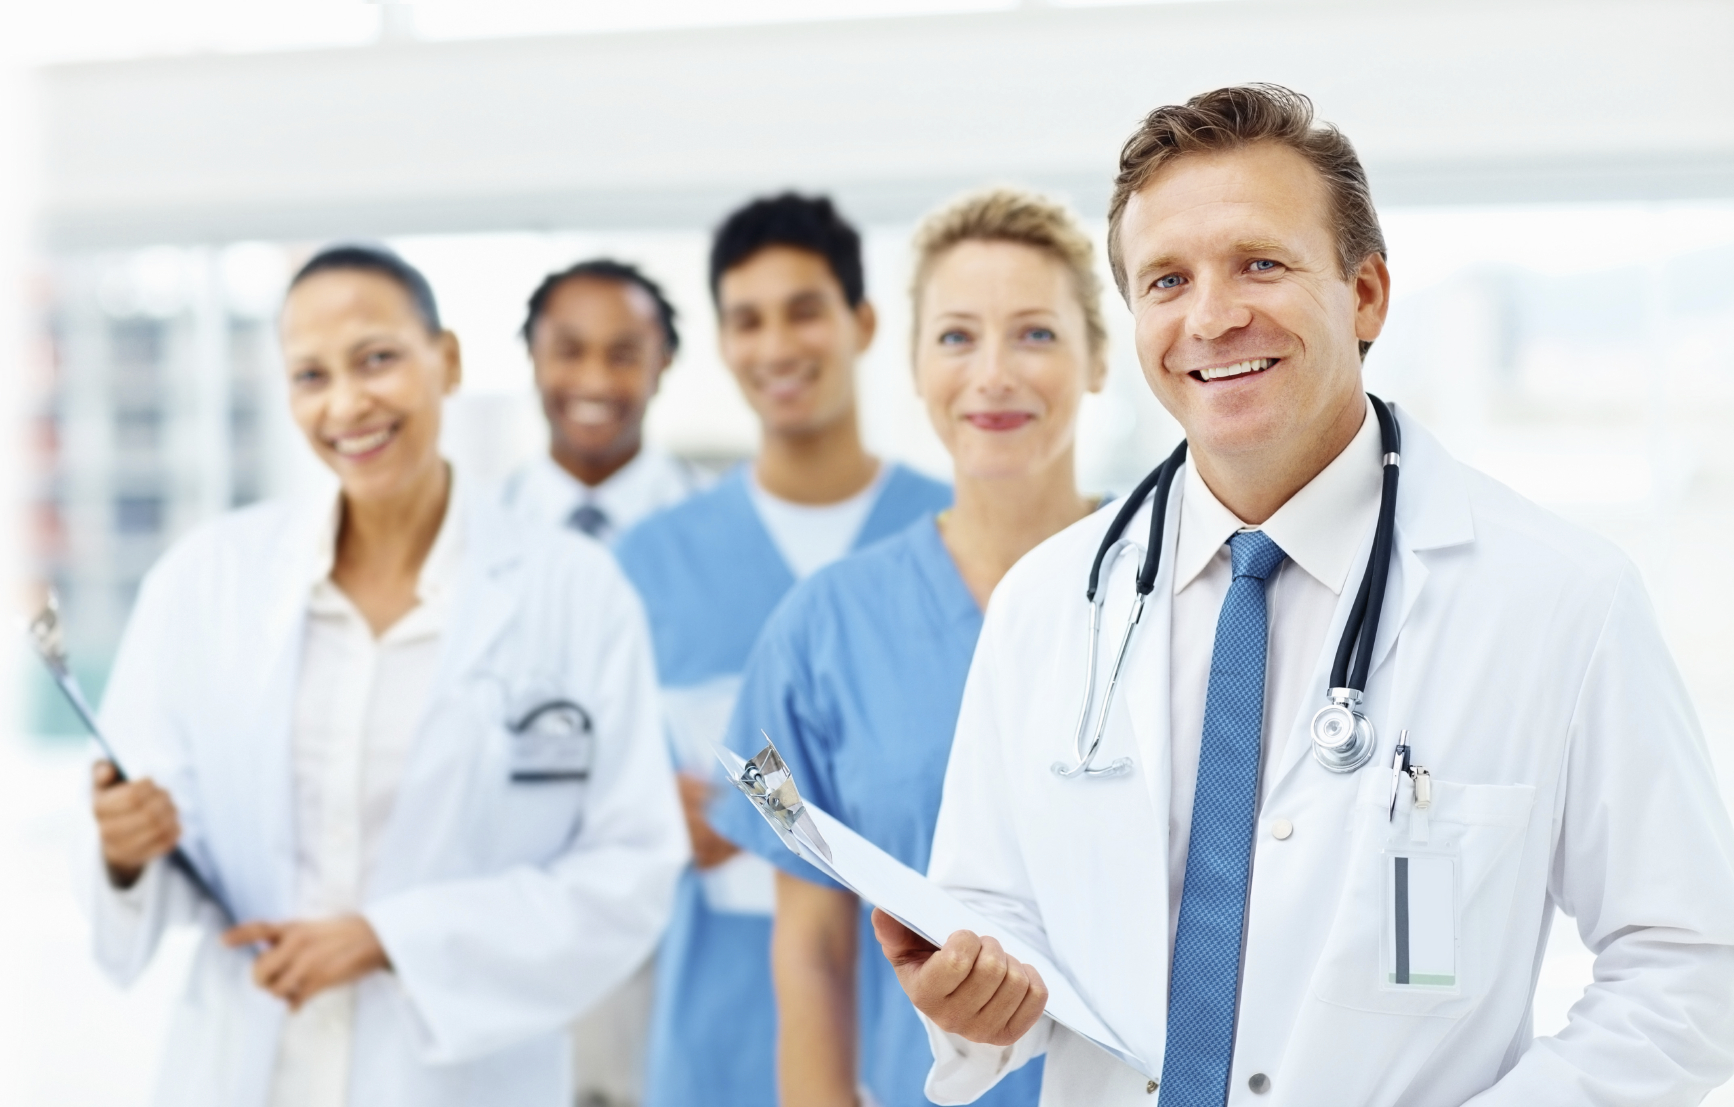 pediatrician assistant education requirements